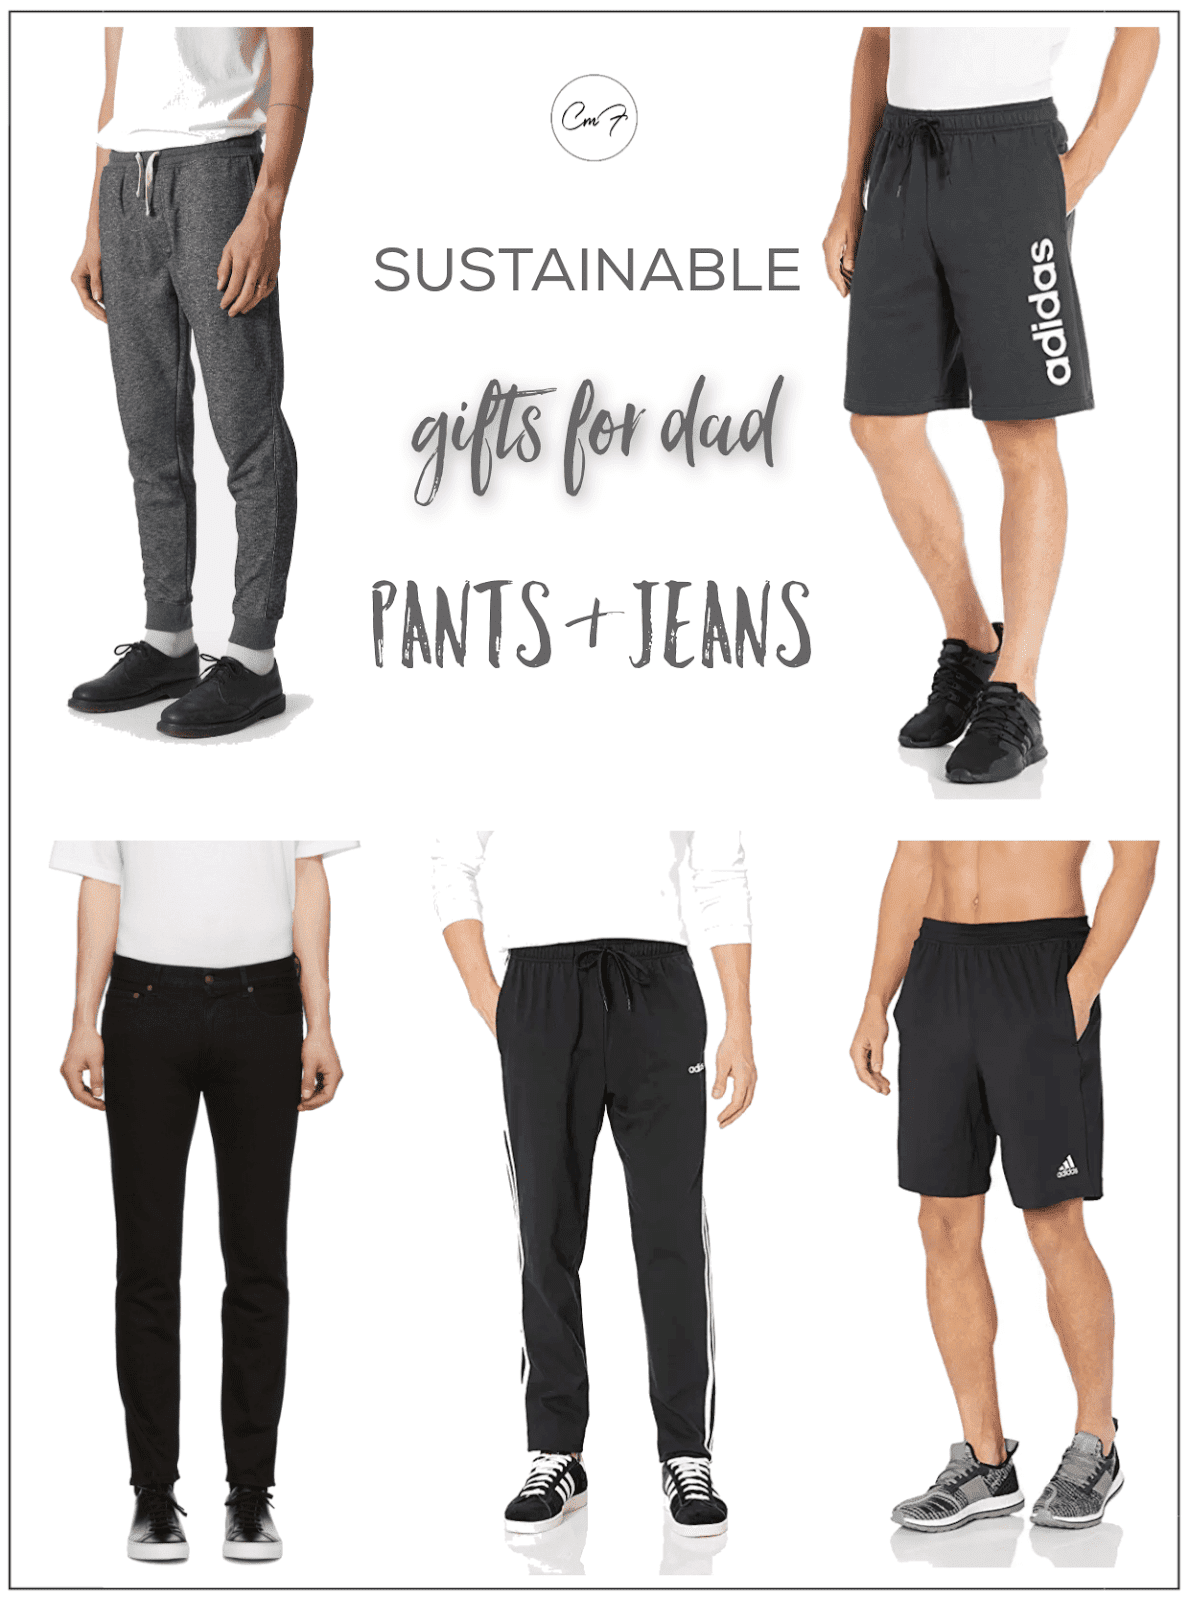 sustainable gifts for dad pants and jeans